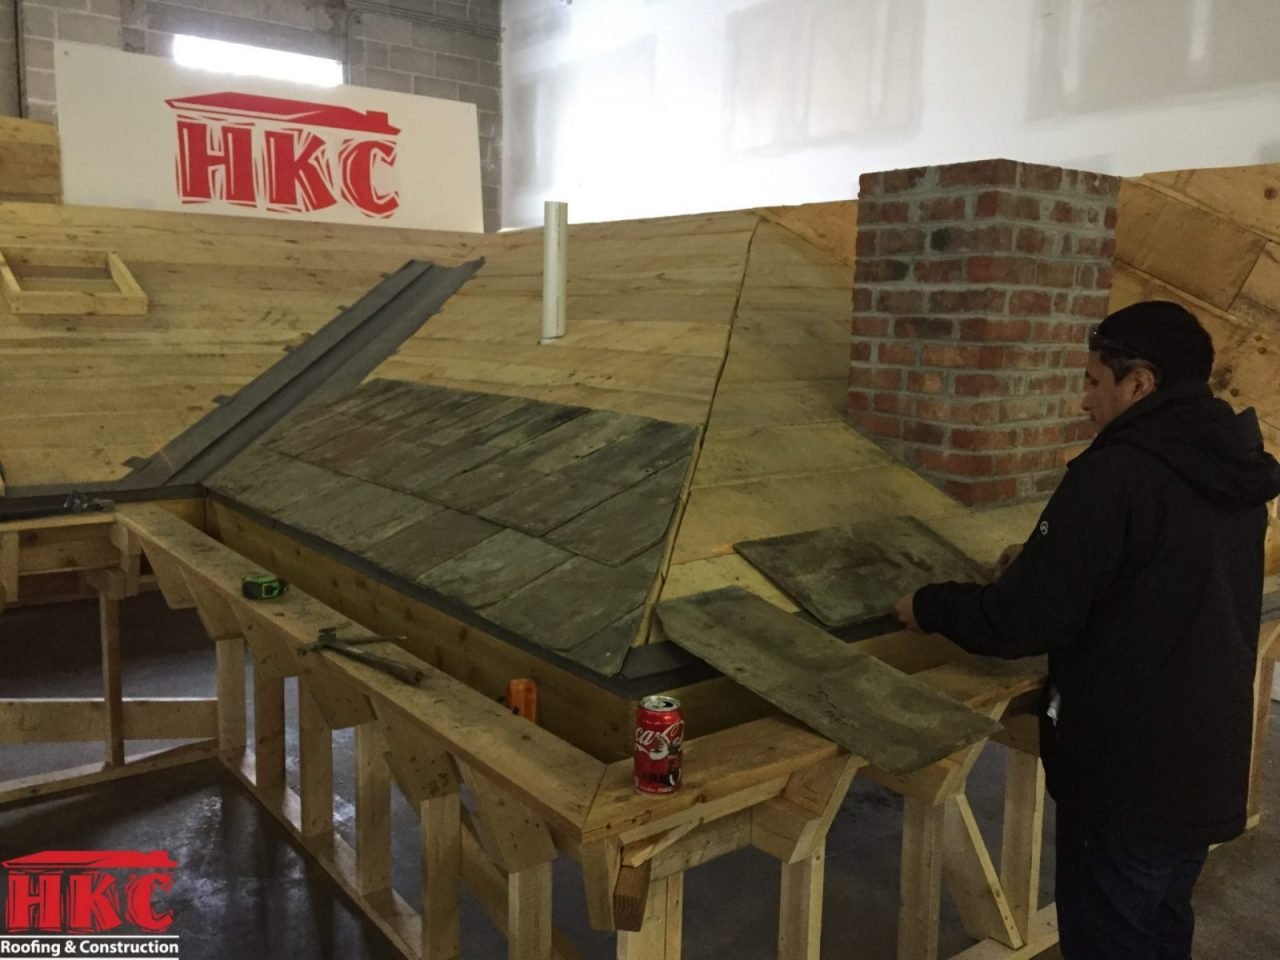 Hkc Roofing Builds Roof Training Facility Hkc